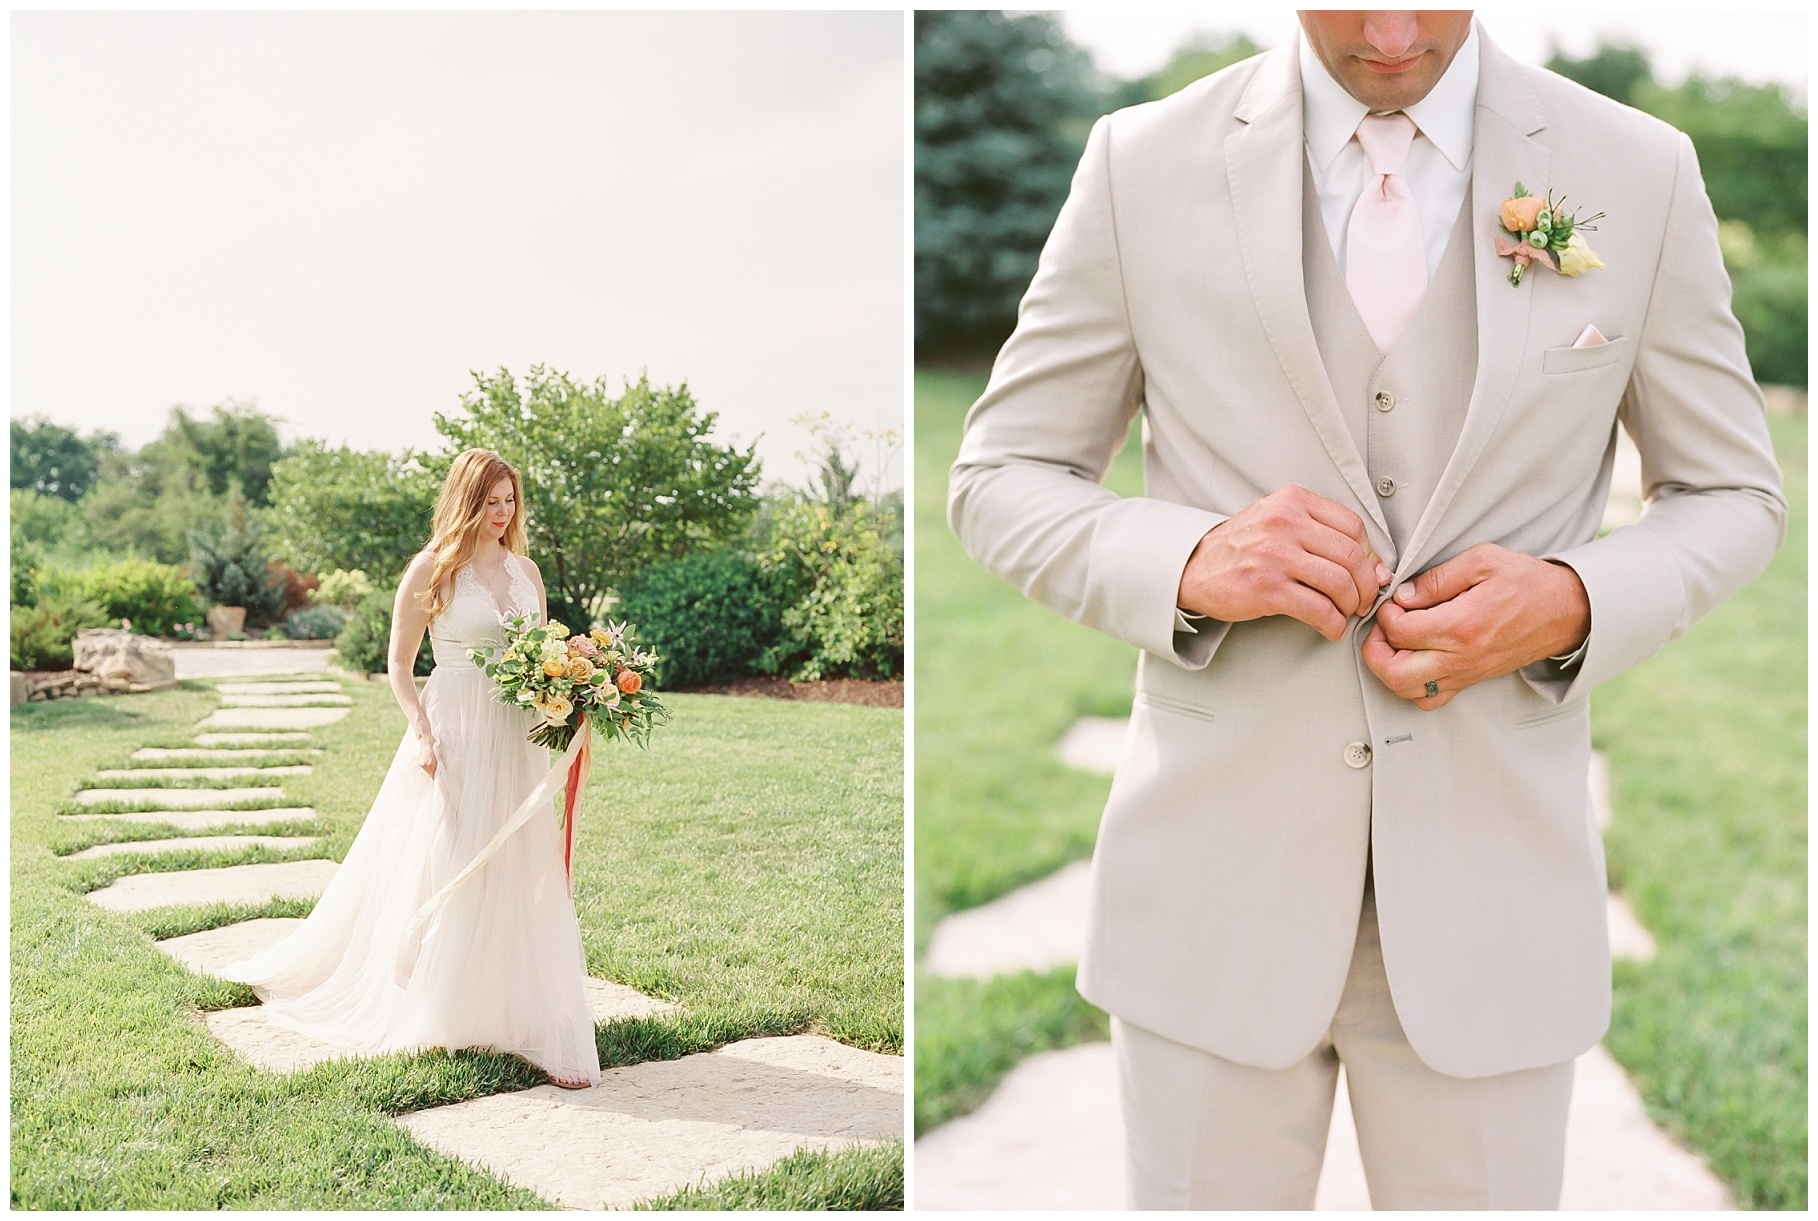 Late Summer Wedding With Pastel Toned Soiree at Blue Bell Farm by Kelsi Kliethermes Photography Best Columbia Missouri Wedding Photographer_0042.jpg